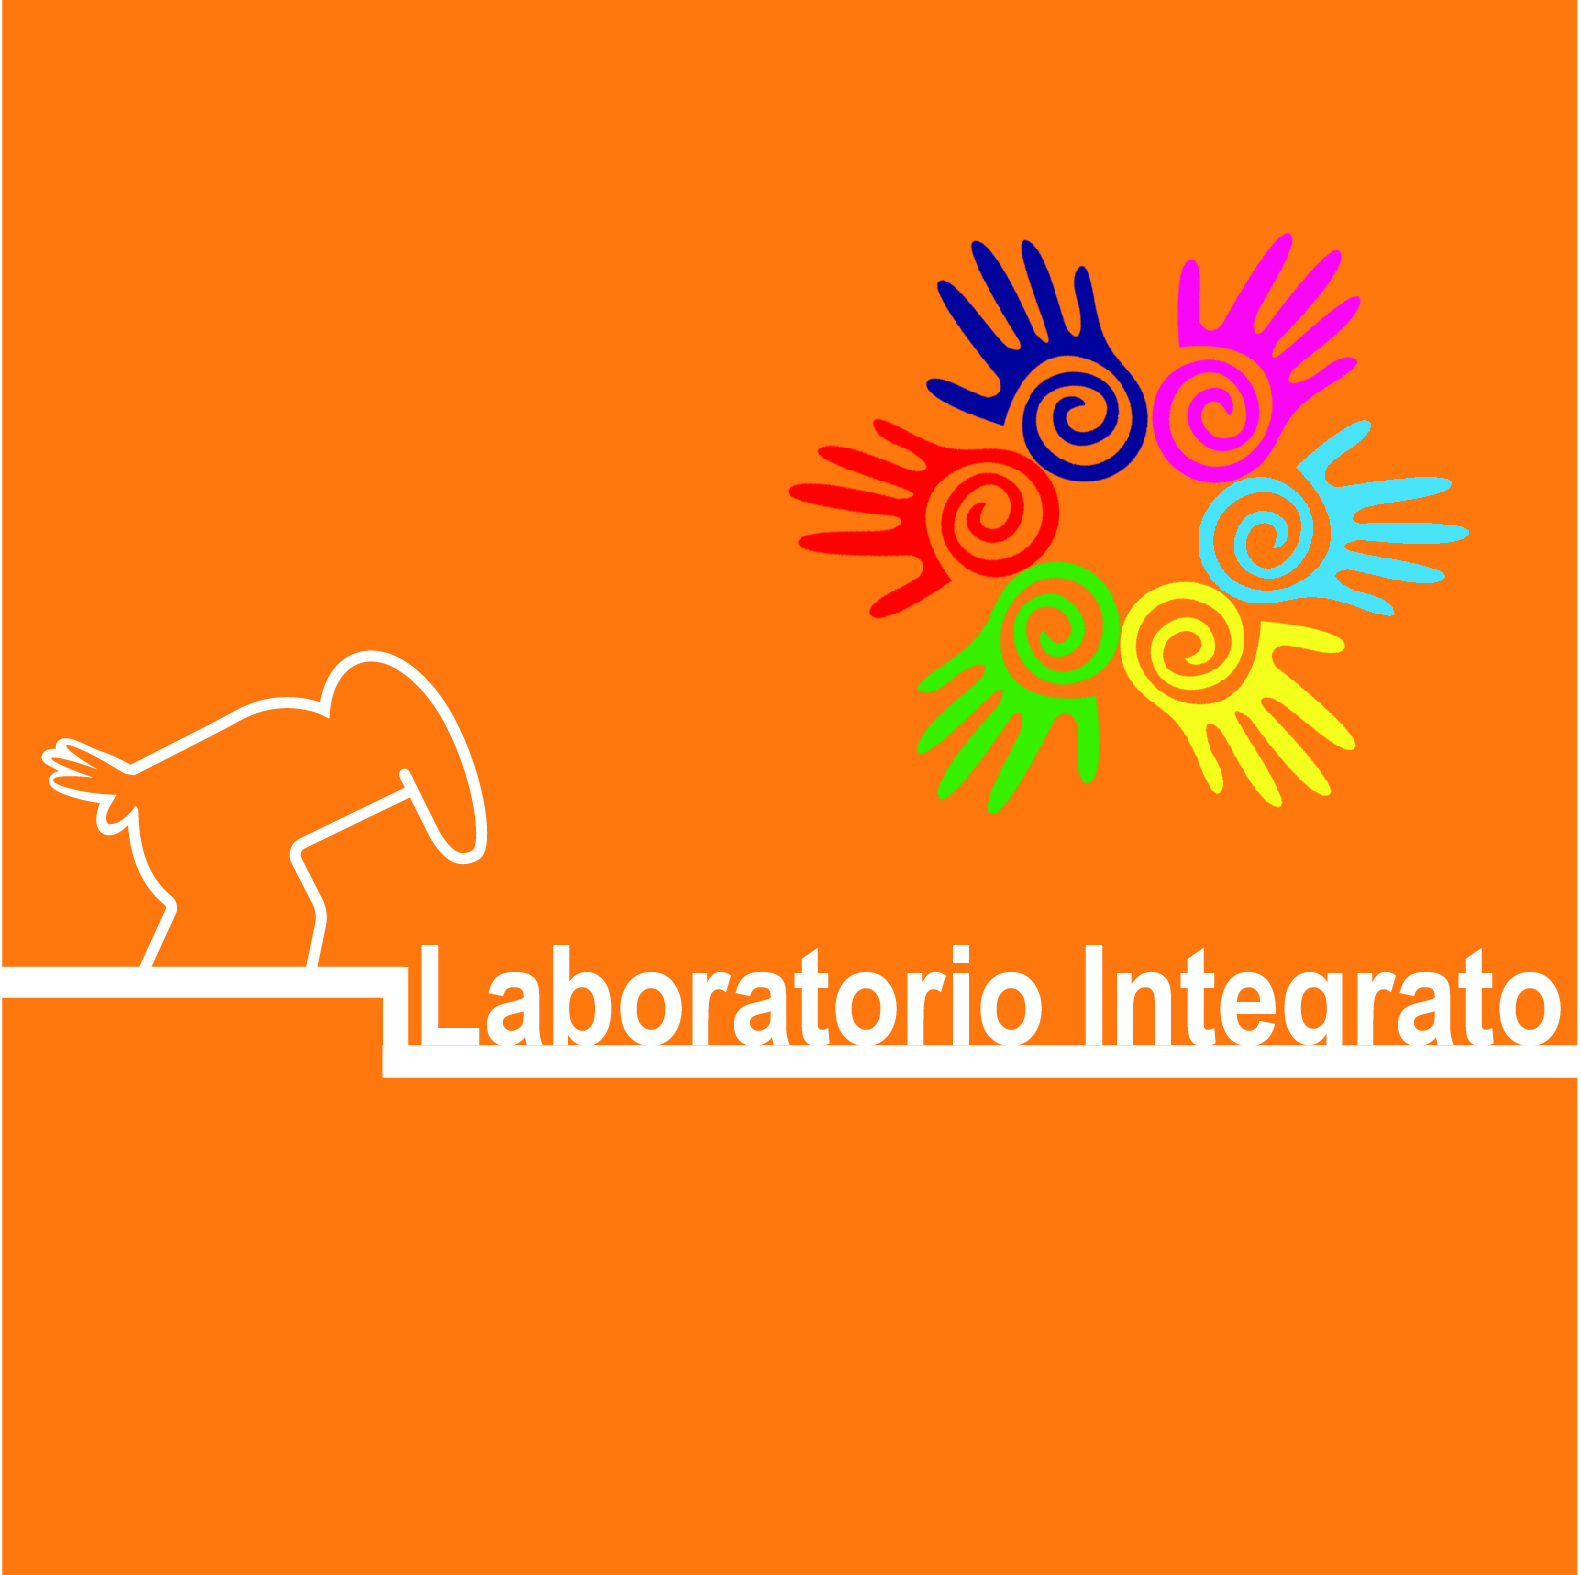 laboratorio integrato